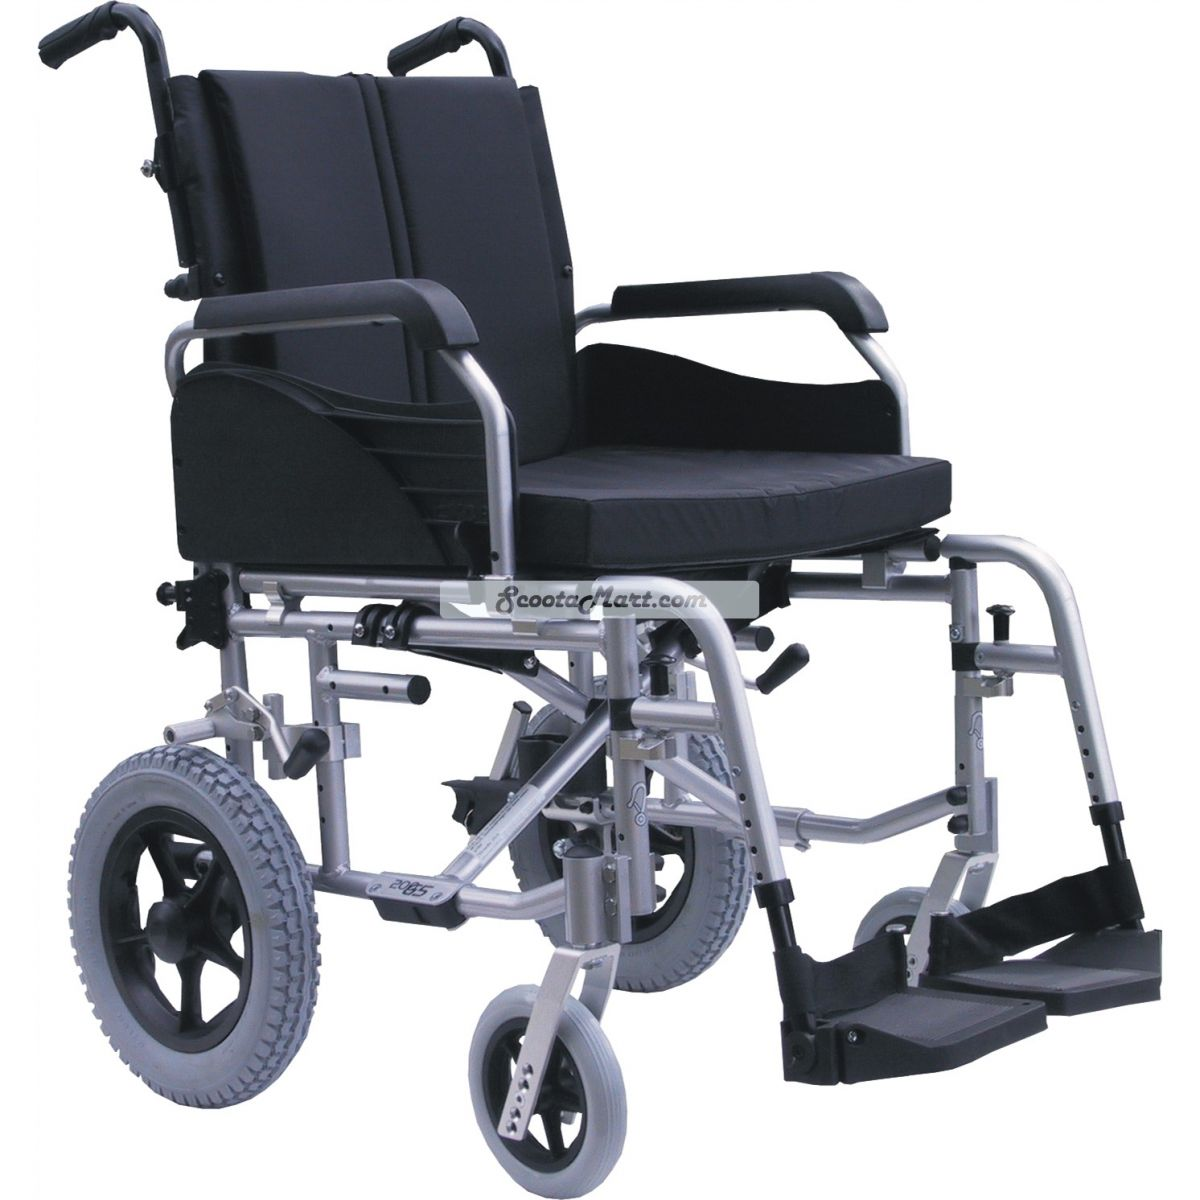 wheel chair in delhi steelcase kart new wheelchair hire service for knowsley kdc